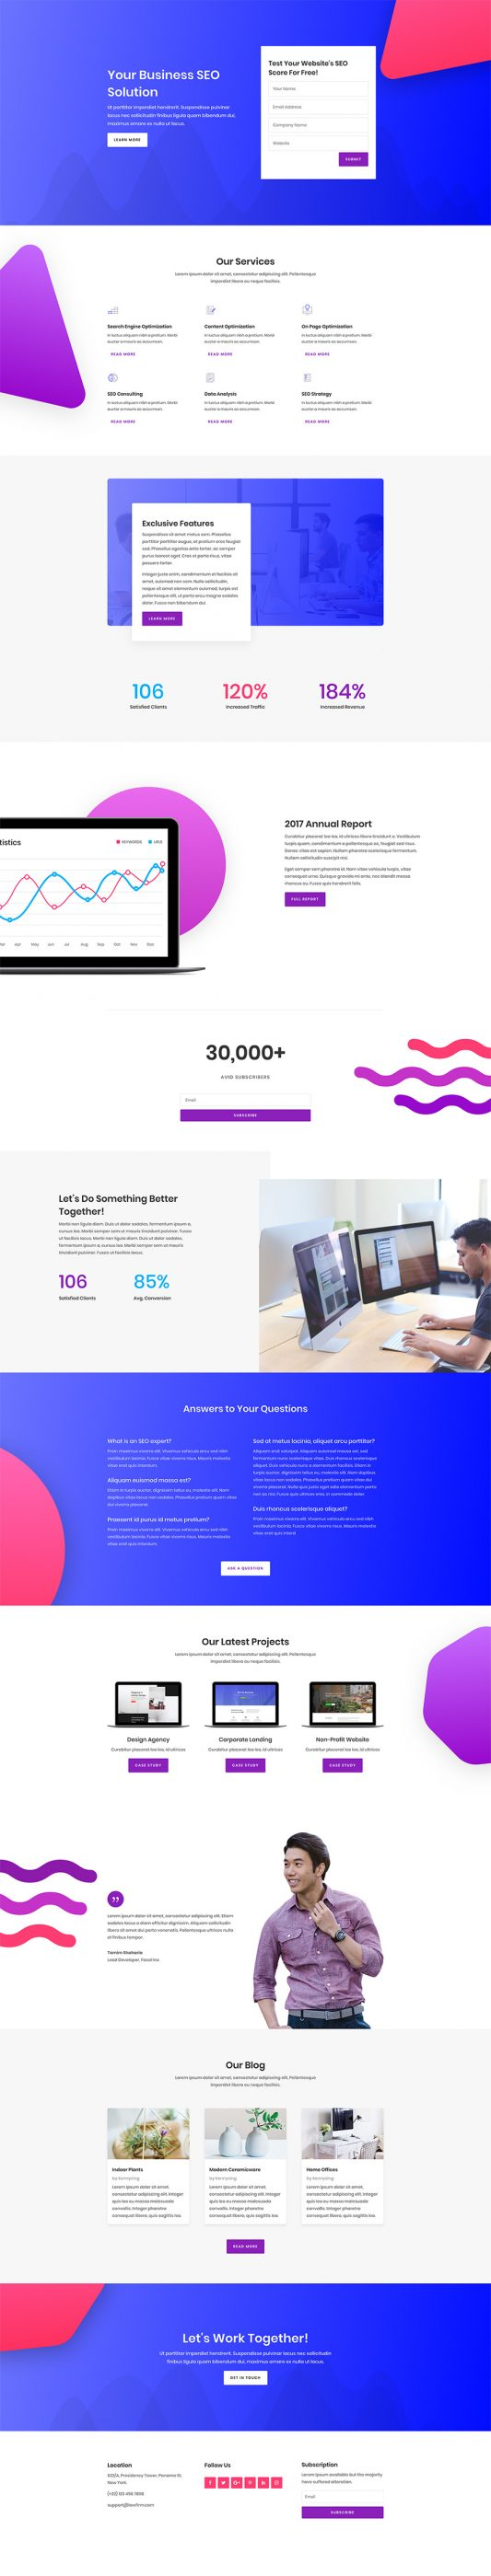 SEO Agency Web Design 6